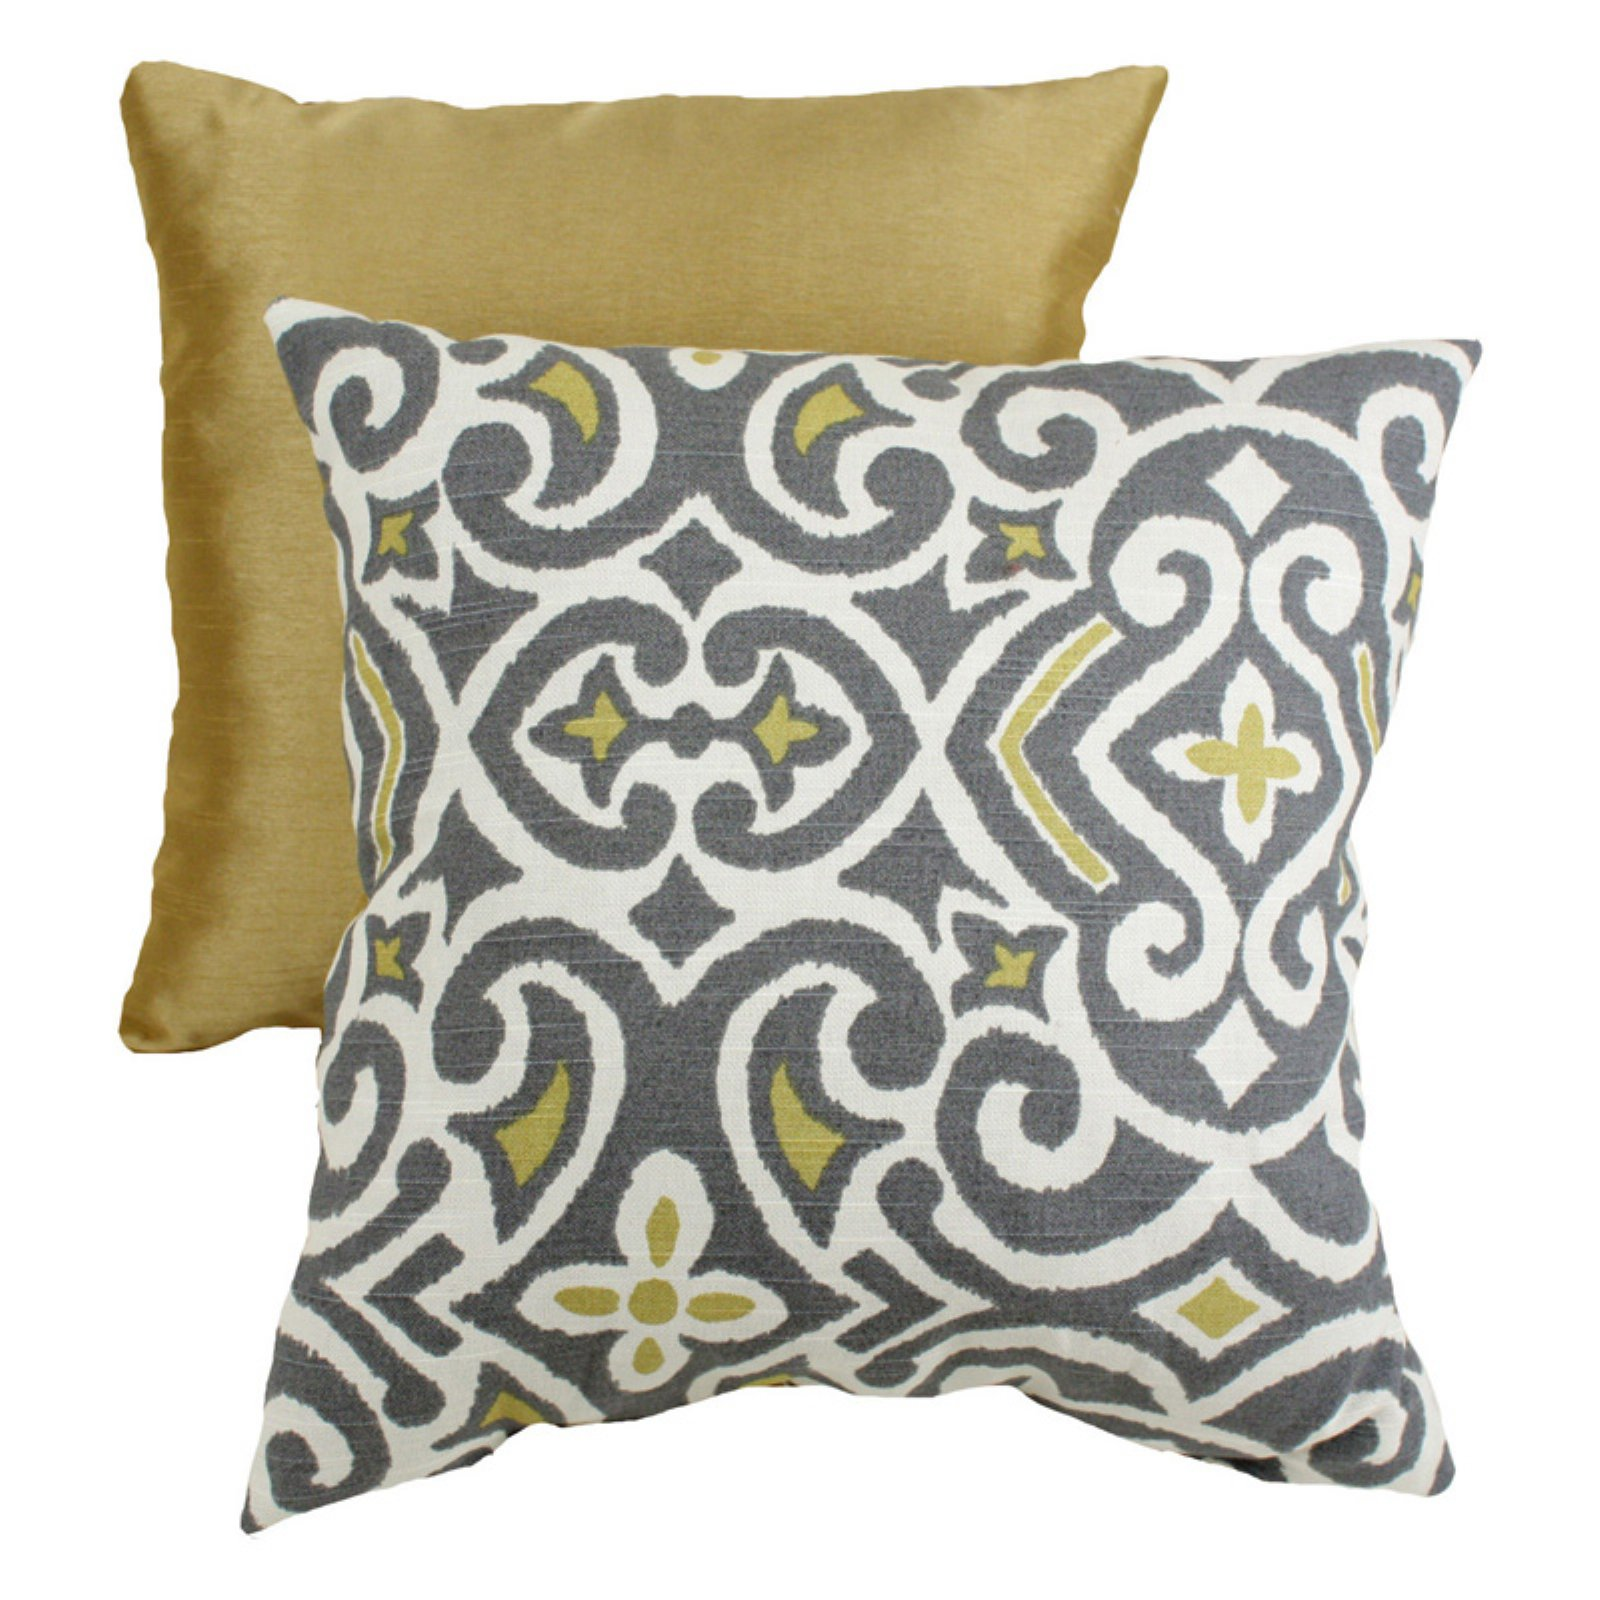 Pillow Perfect Decorative Gray and Yellow Damask Square Toss Pillow by Overstock